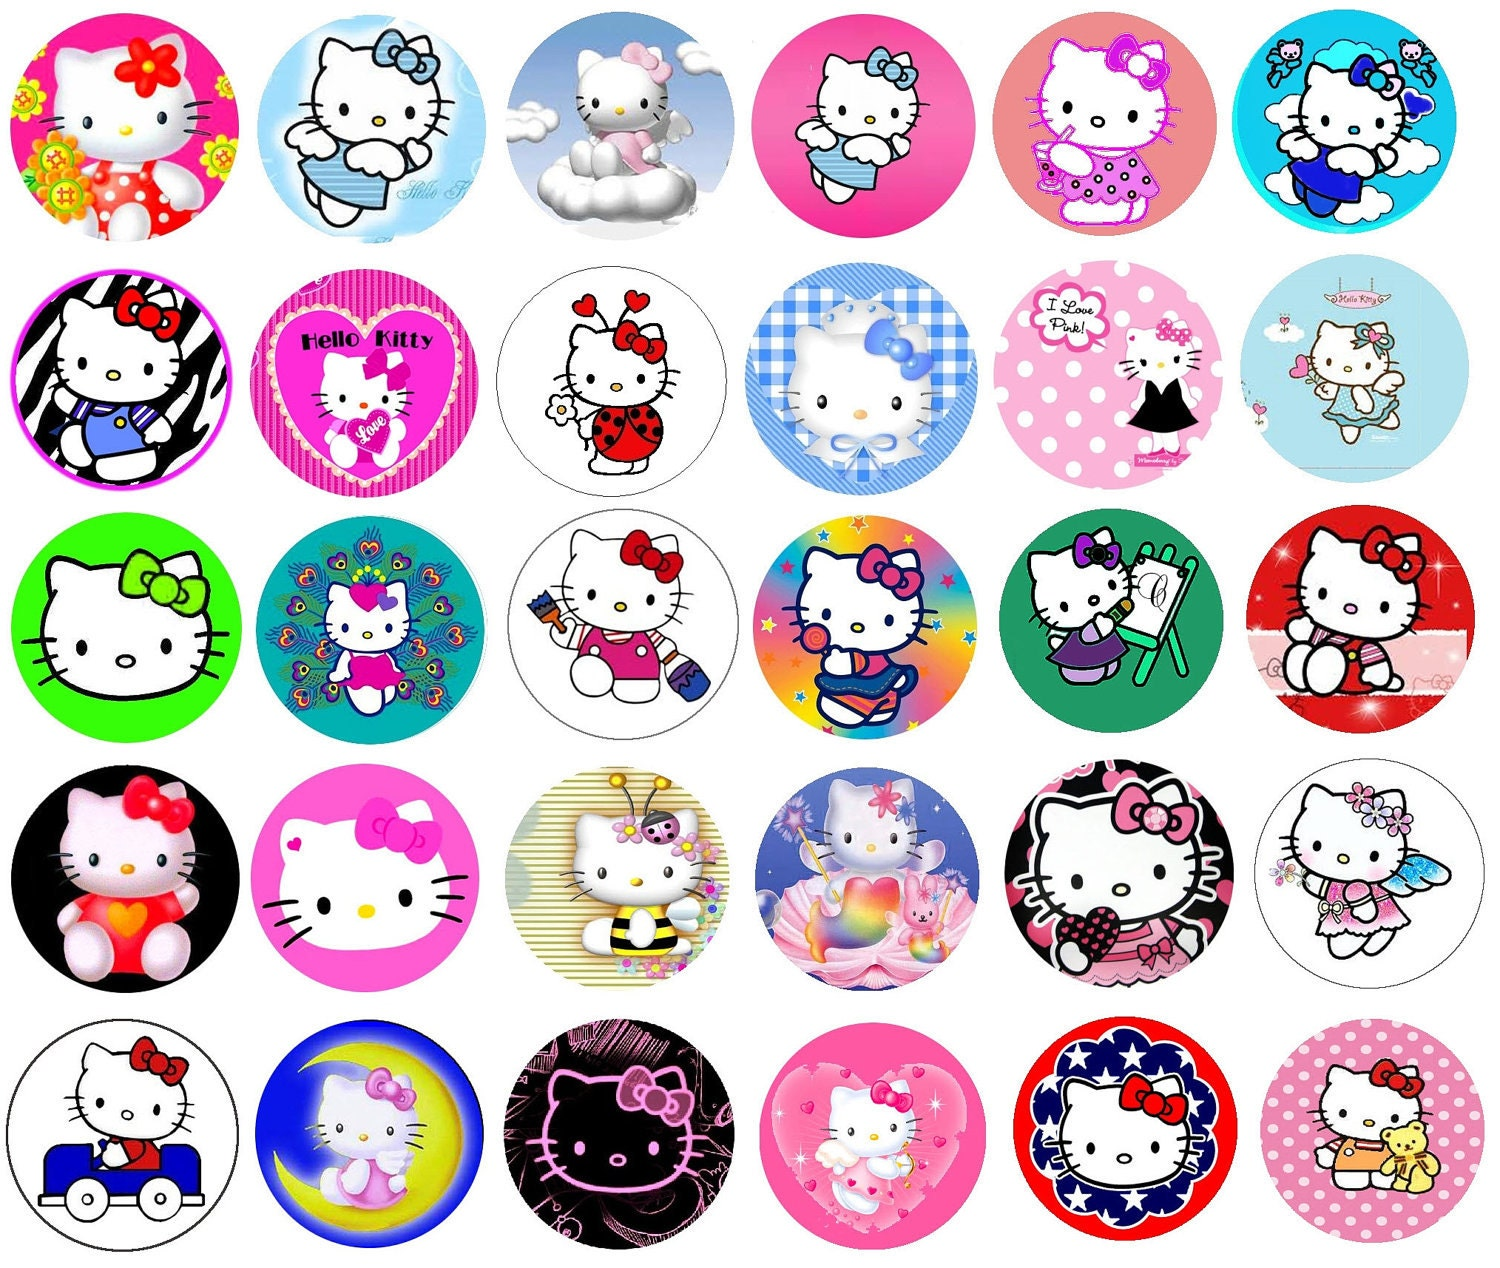 Pin free bottle cap template pictures on pinterest for Bottle cap designs